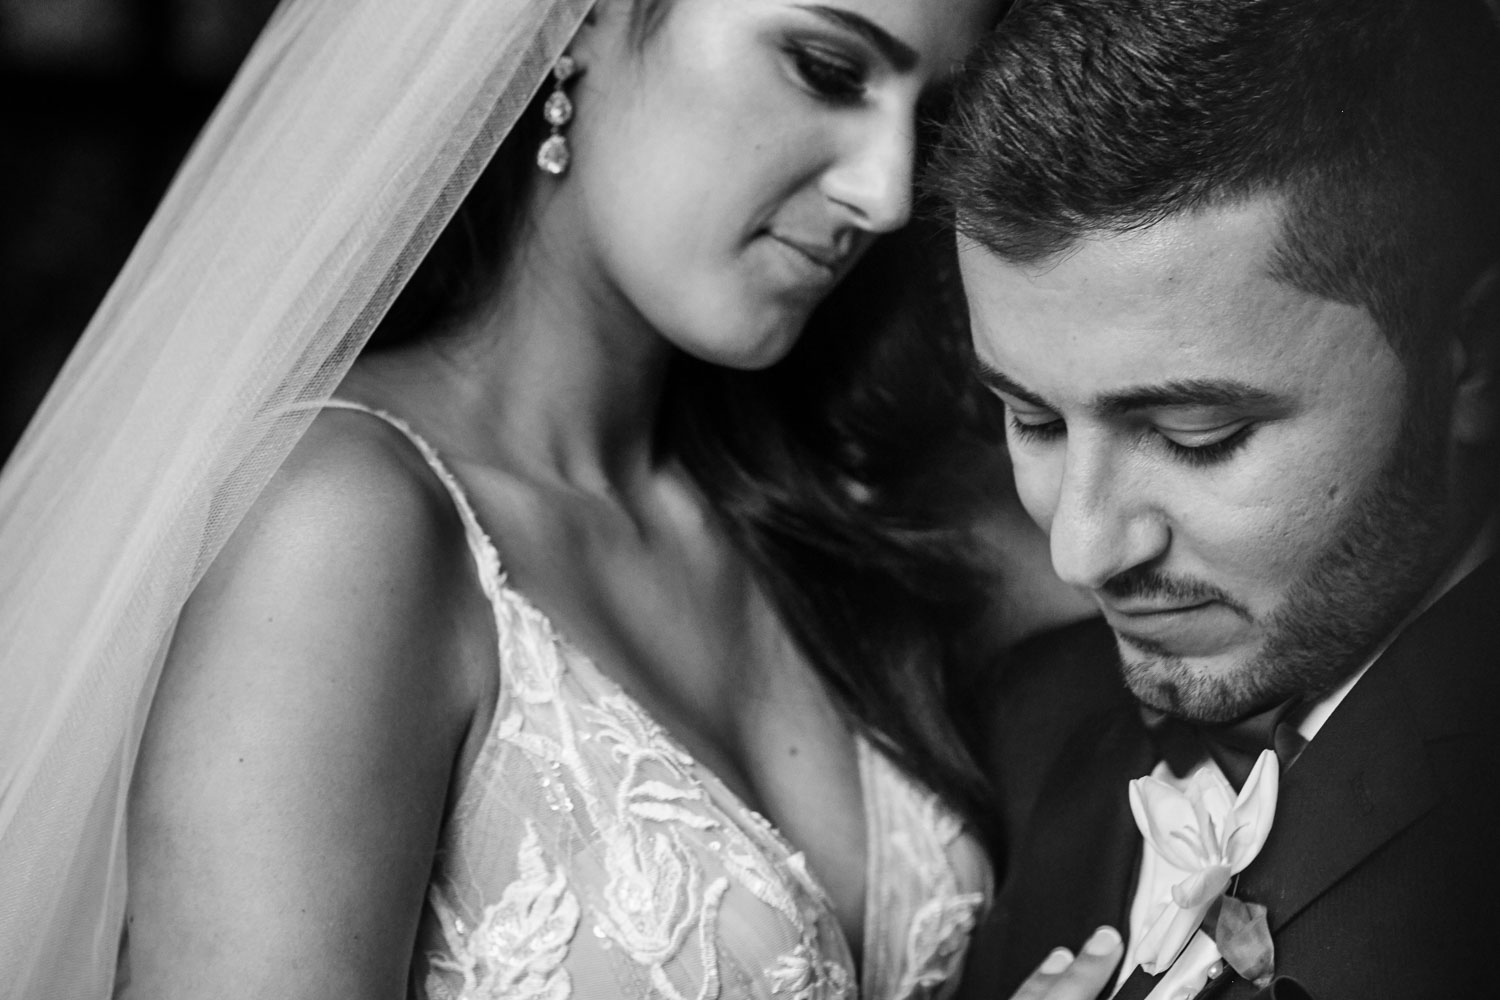 a black and white wedding image of the couple embracing at Le Chatelat Residence